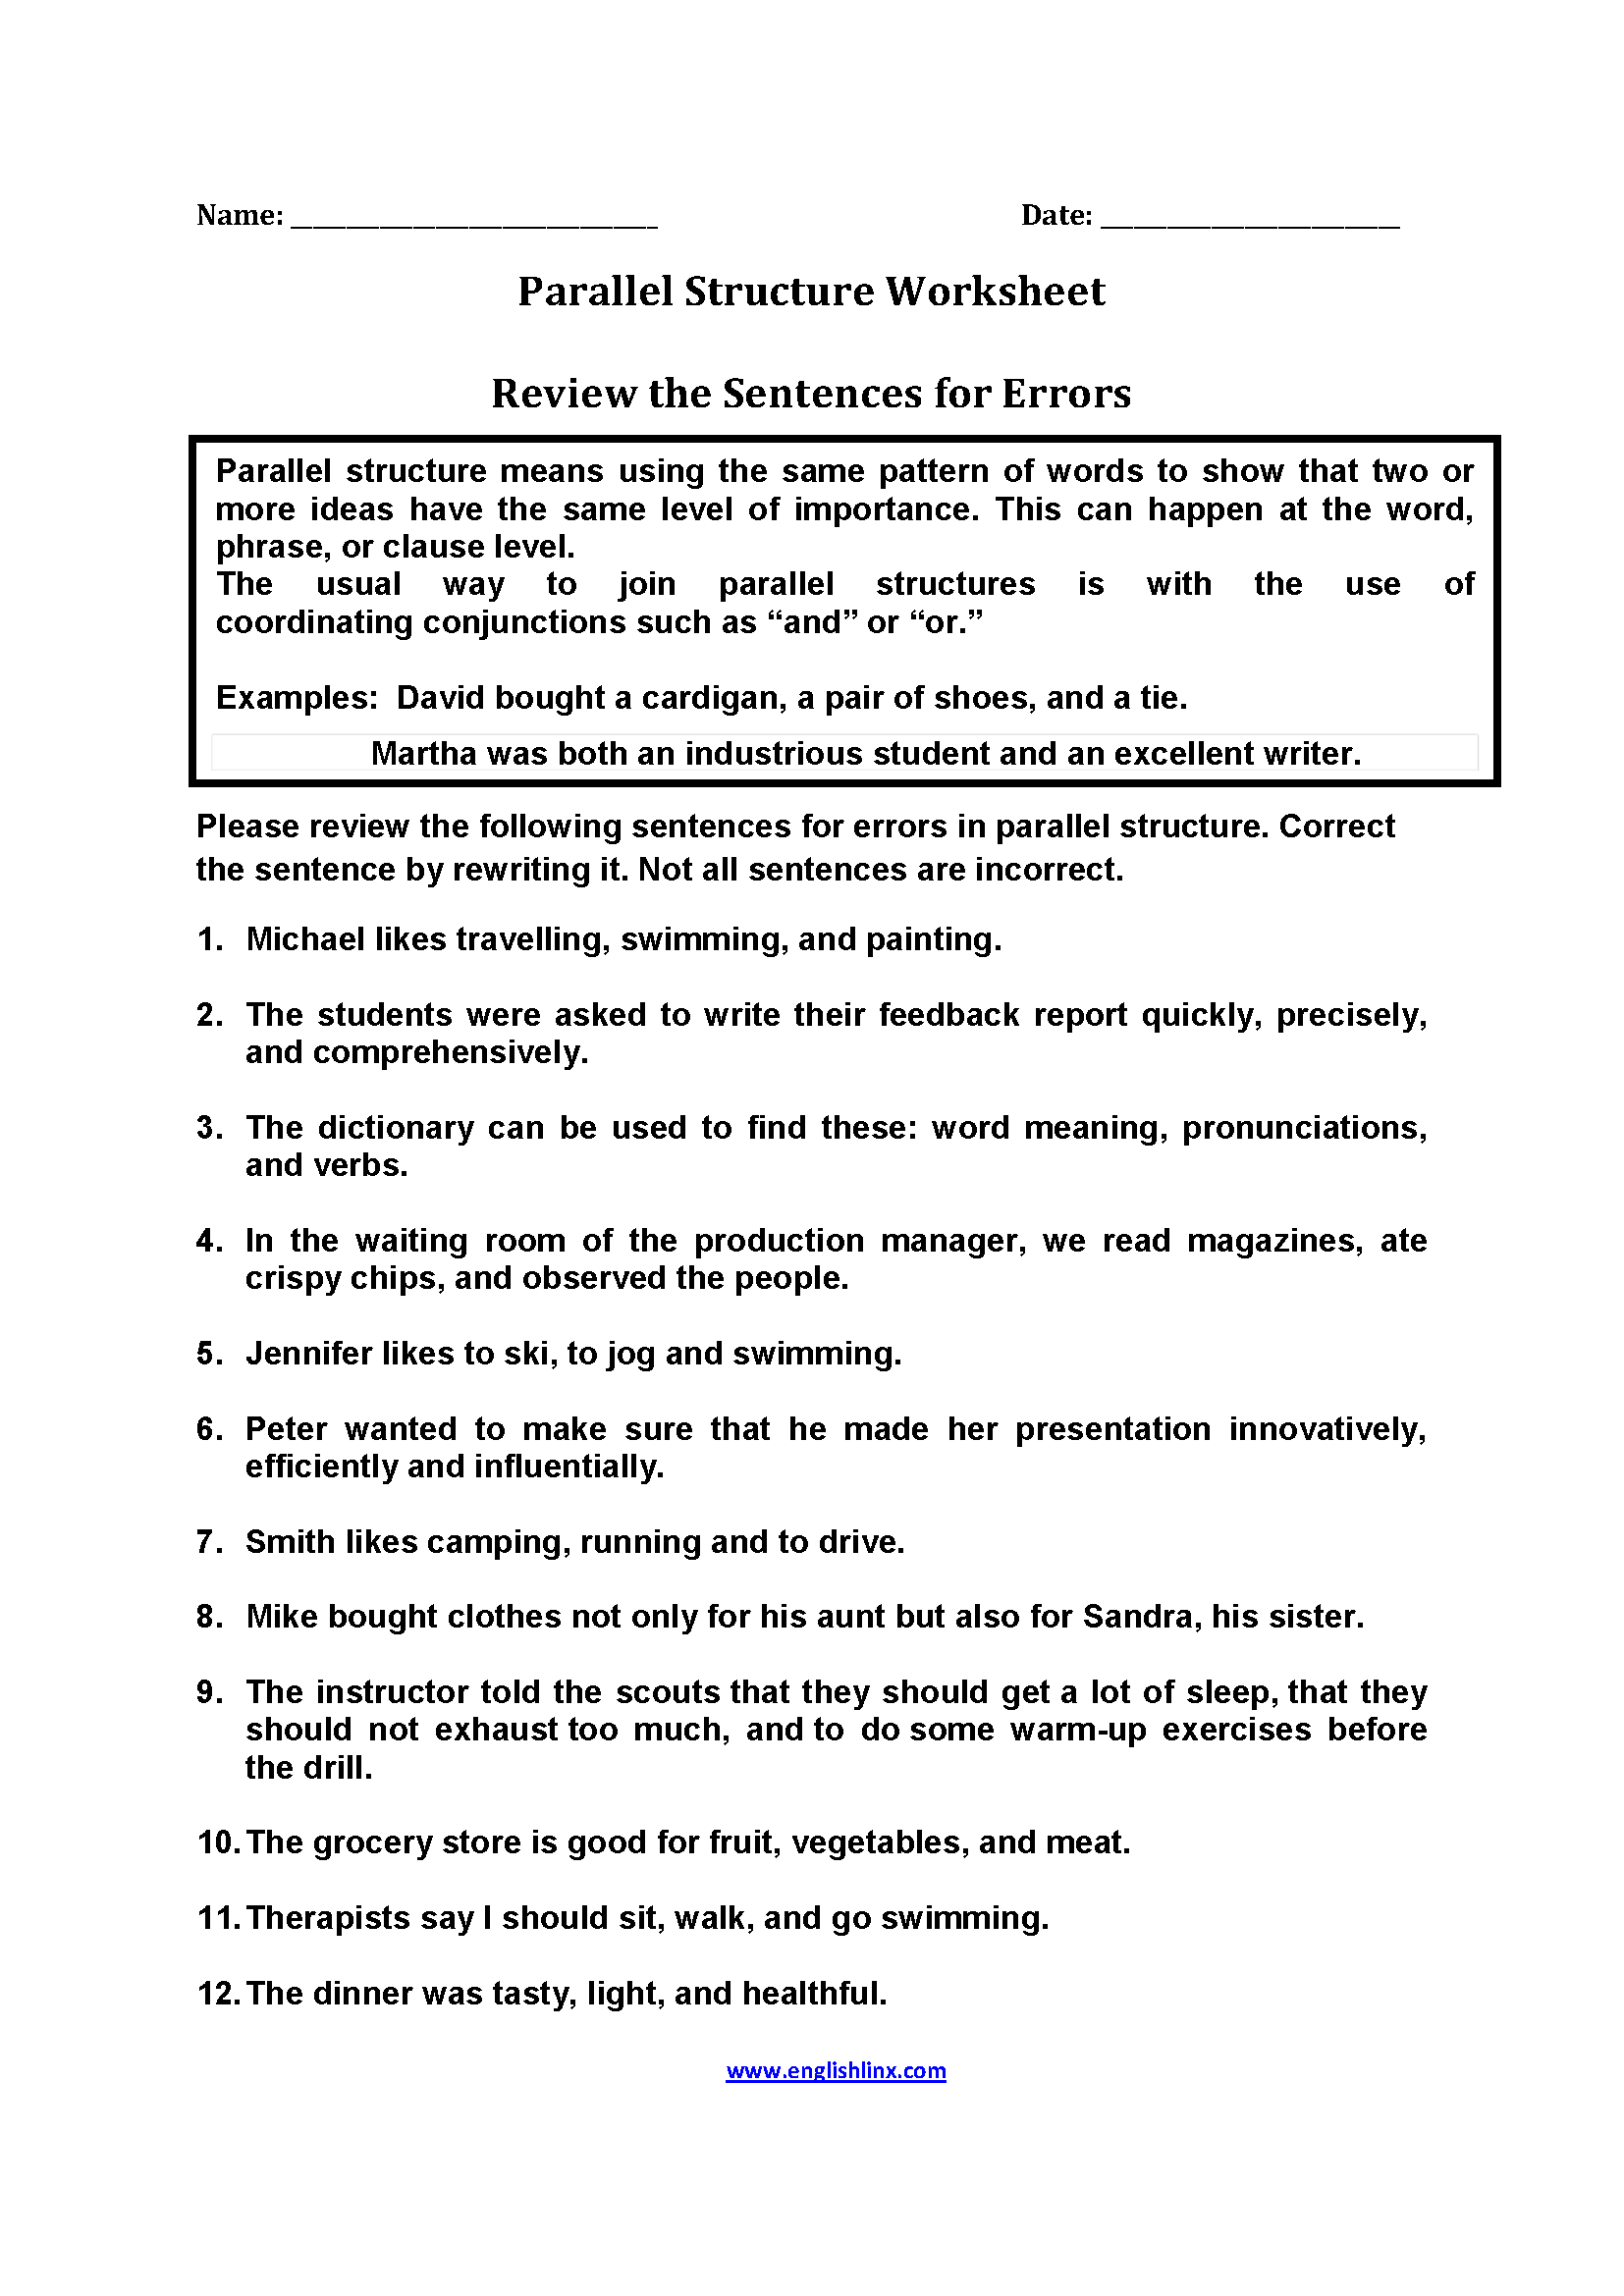 Worksheets Reading Comprehension Strategies Worksheets review sentences for errors parallel worksheets english language sentence forreading comprehensionenglish